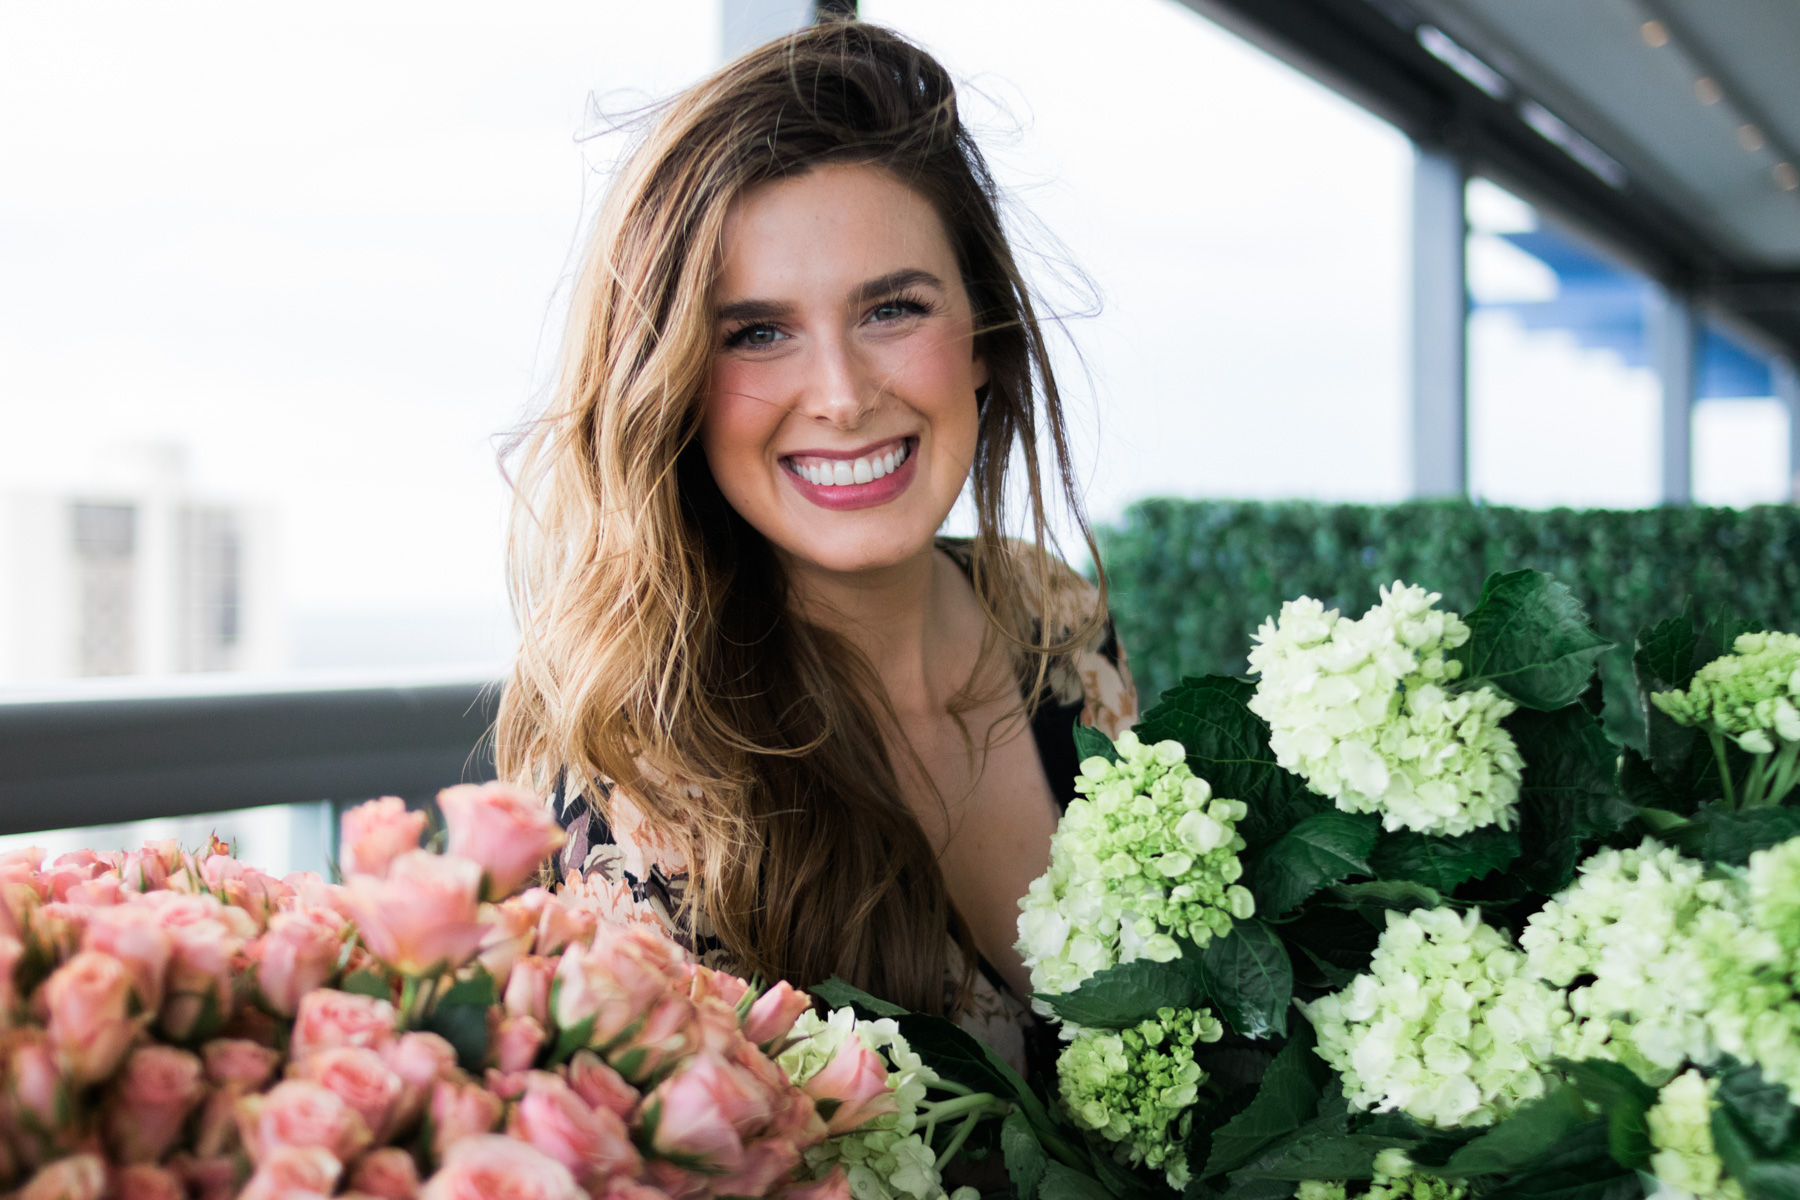 pretty woman smiling with floral display